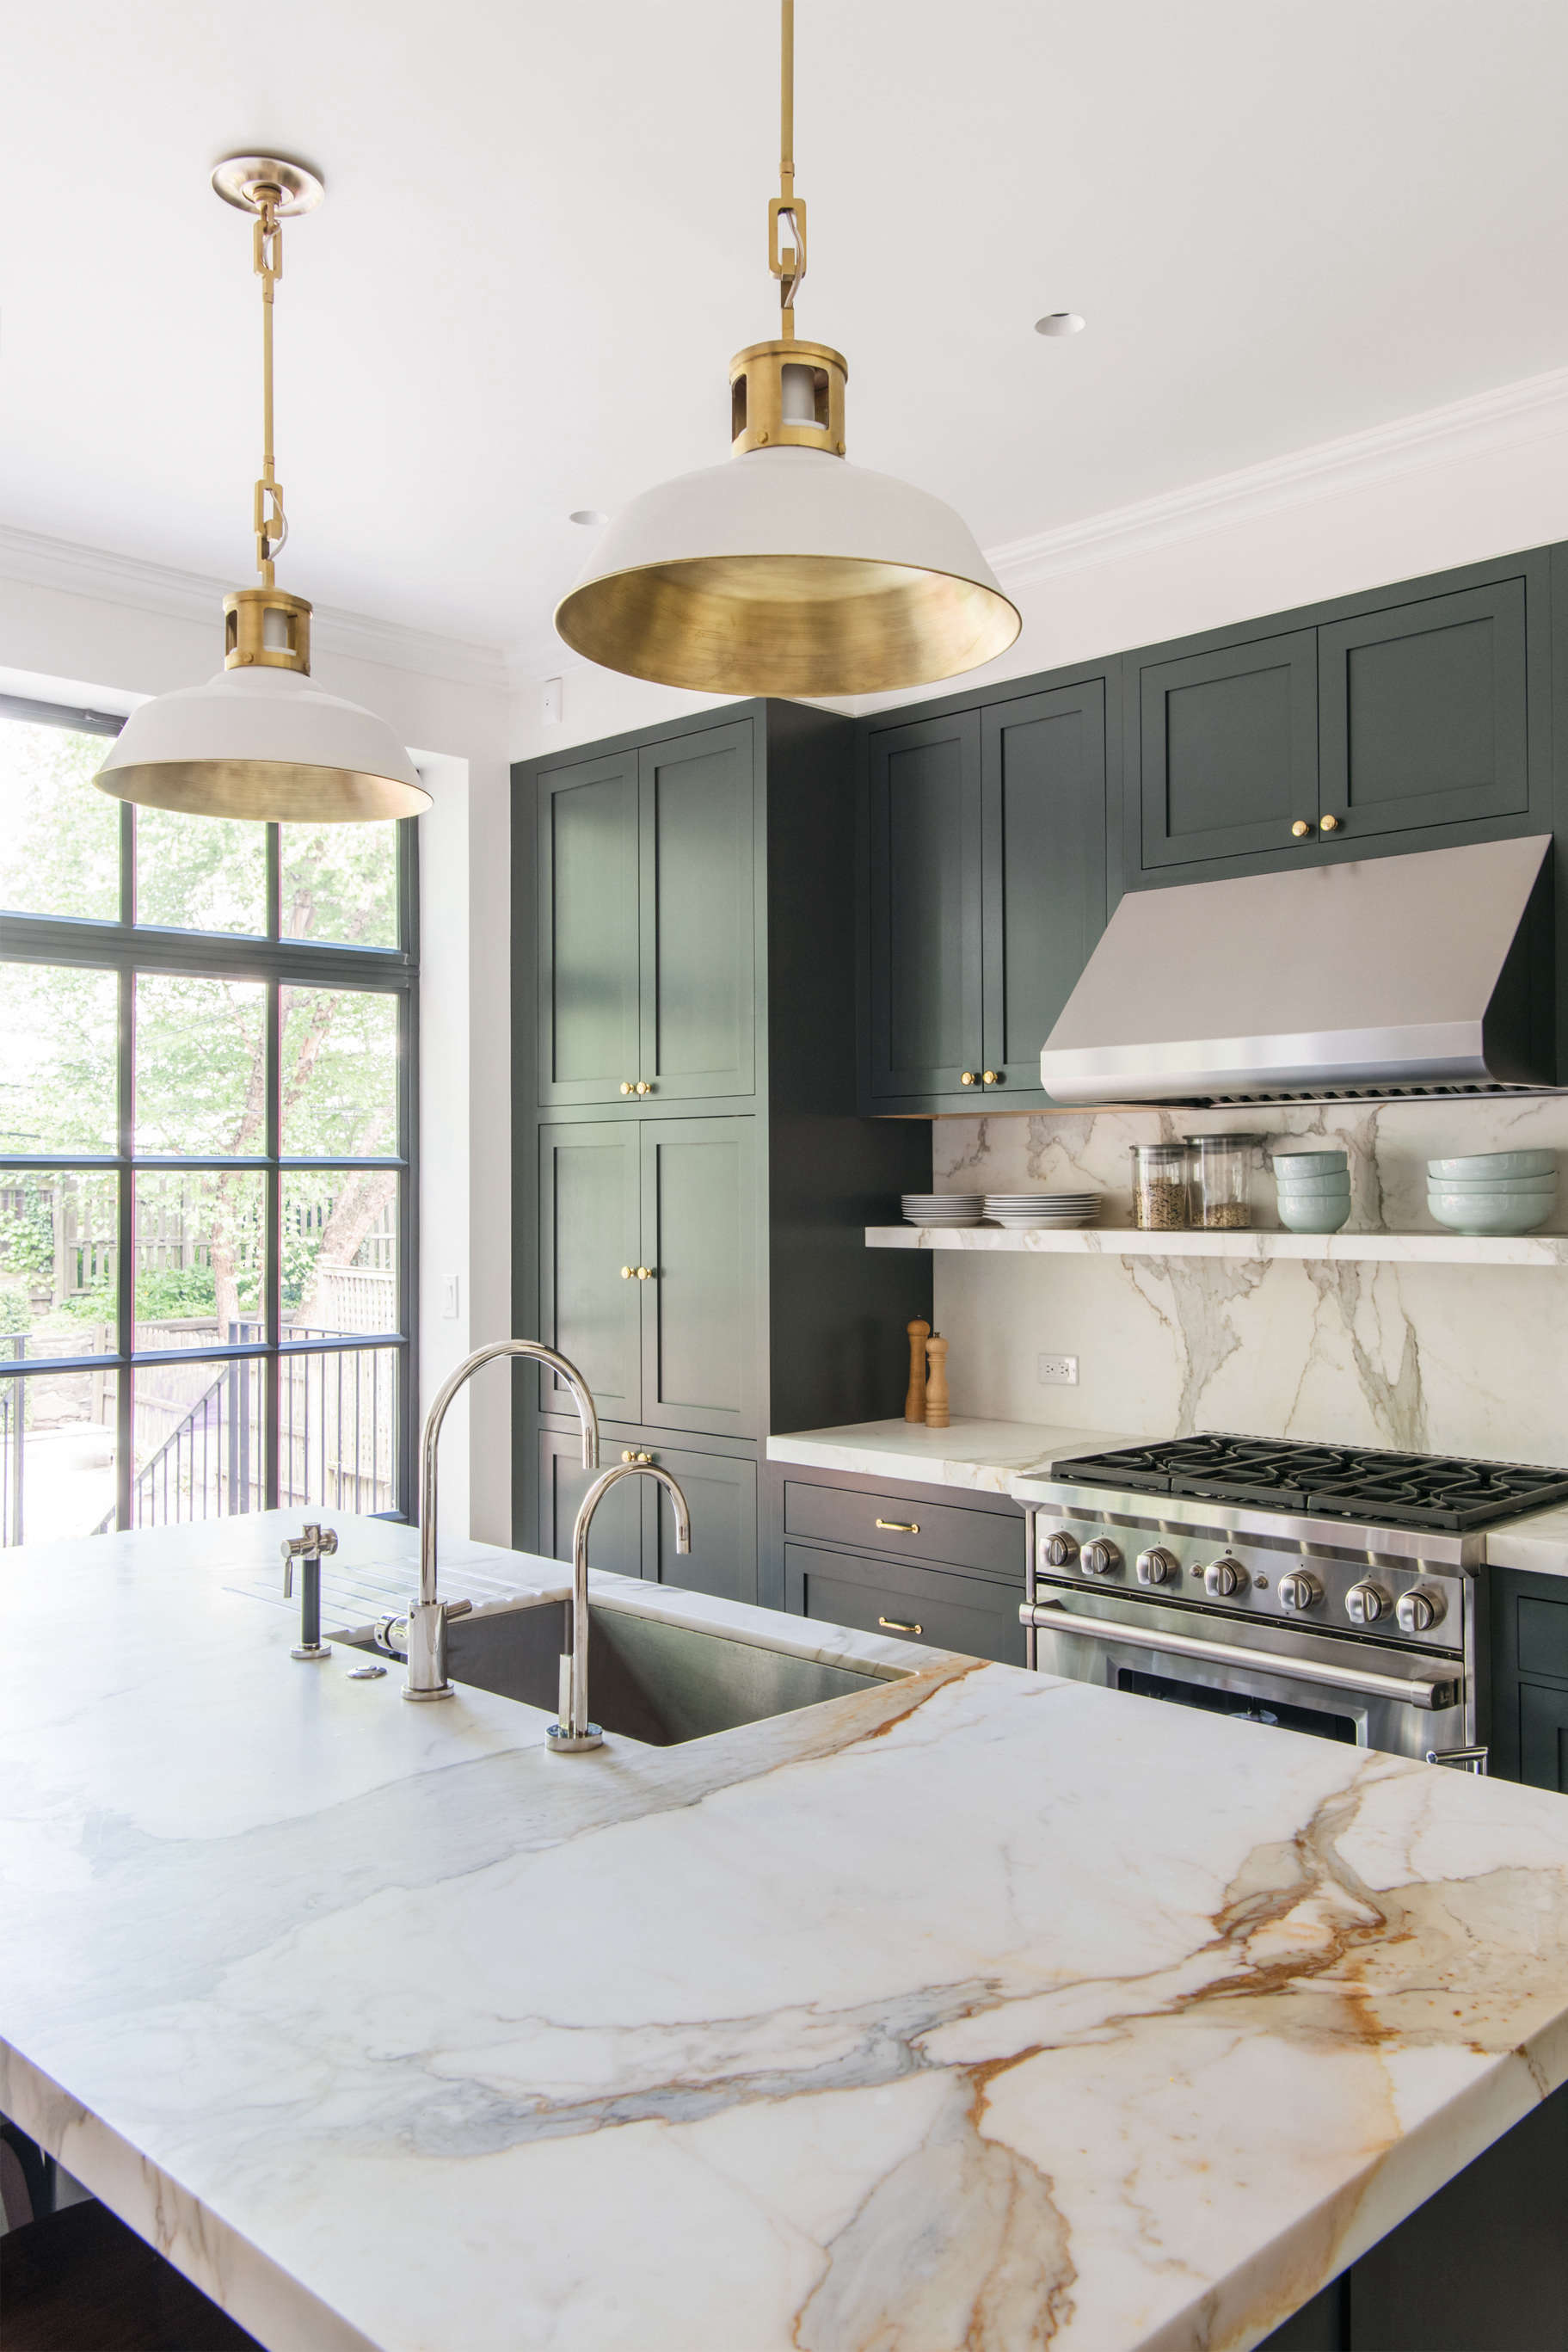 kitchen-with-marble-countertop-pendant-lights-green-blue-cabinets-elizabeth-roberts